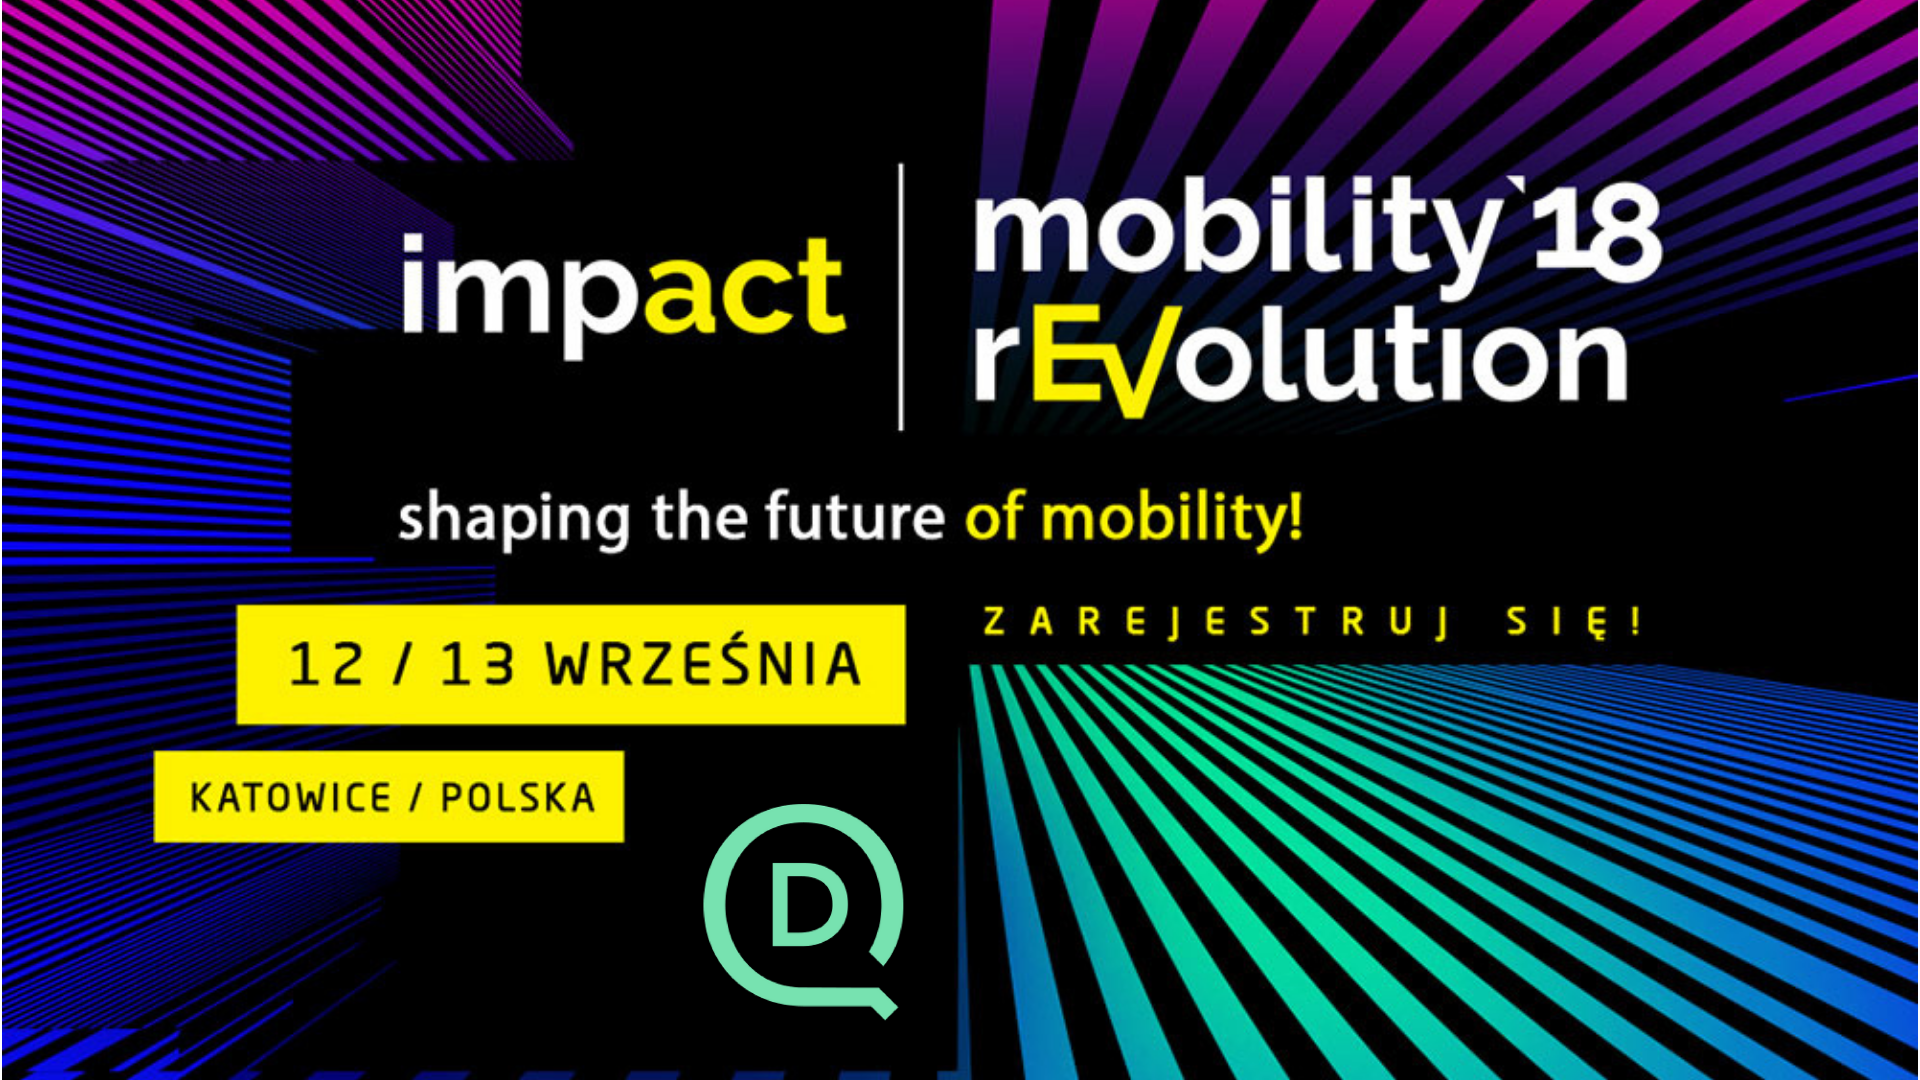 Open-data in transport: necessity or threat? DriveQuant invited to answer that question at Impact mobility rEVolution in Katowice